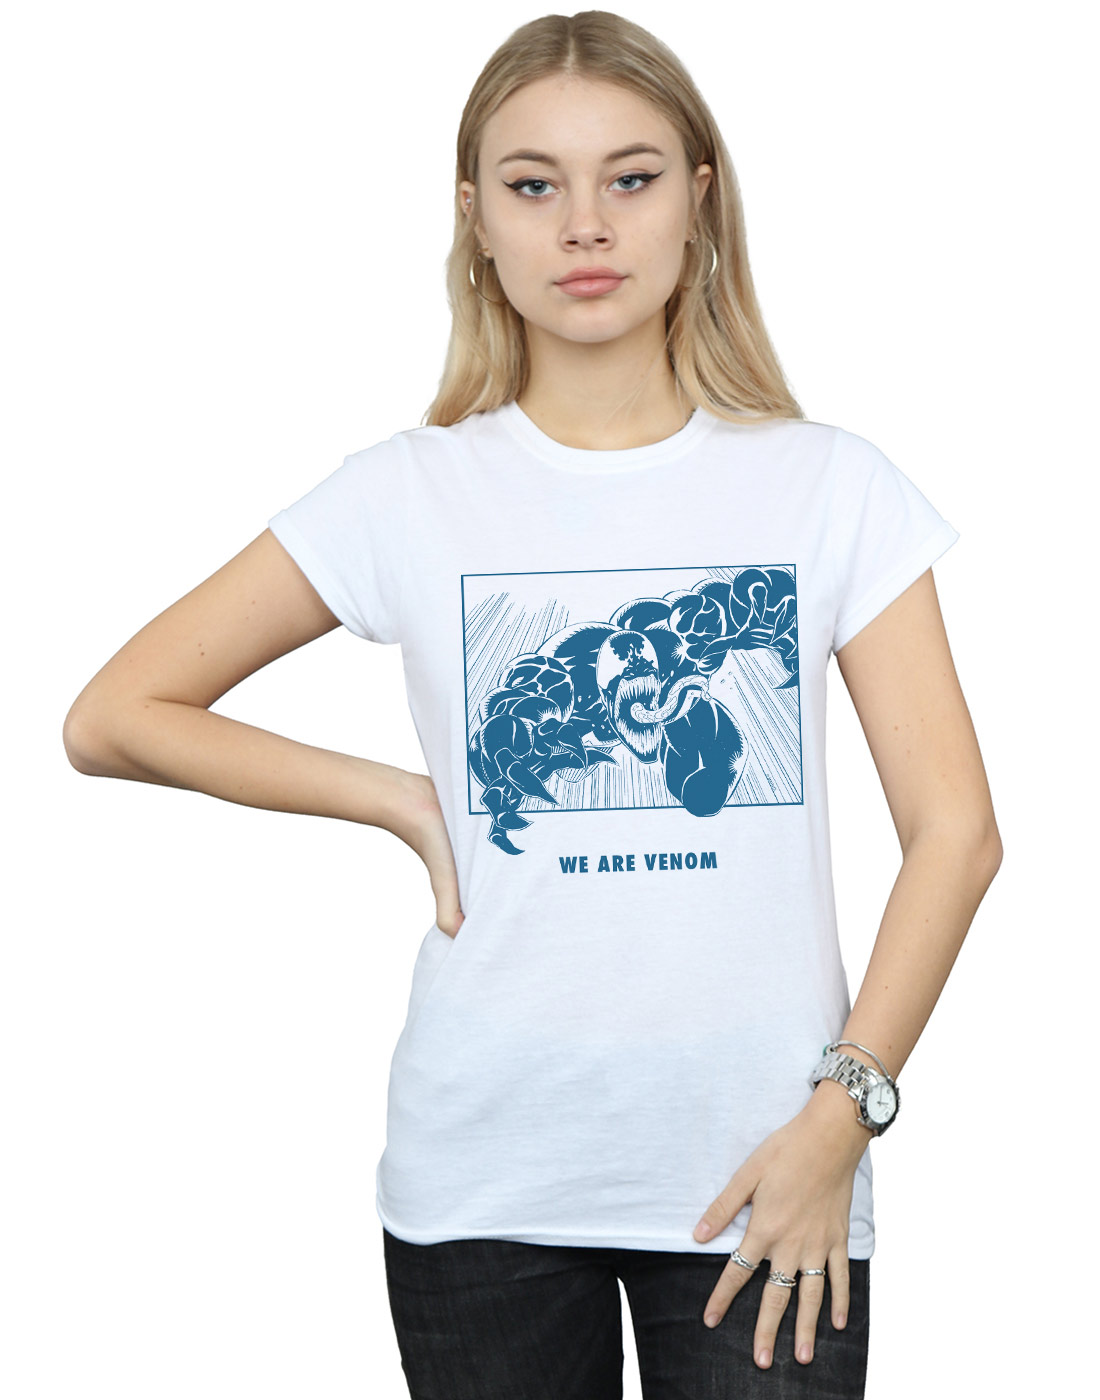 Marvel-Mujer-Venom-We-Are-Venom-Camiseta